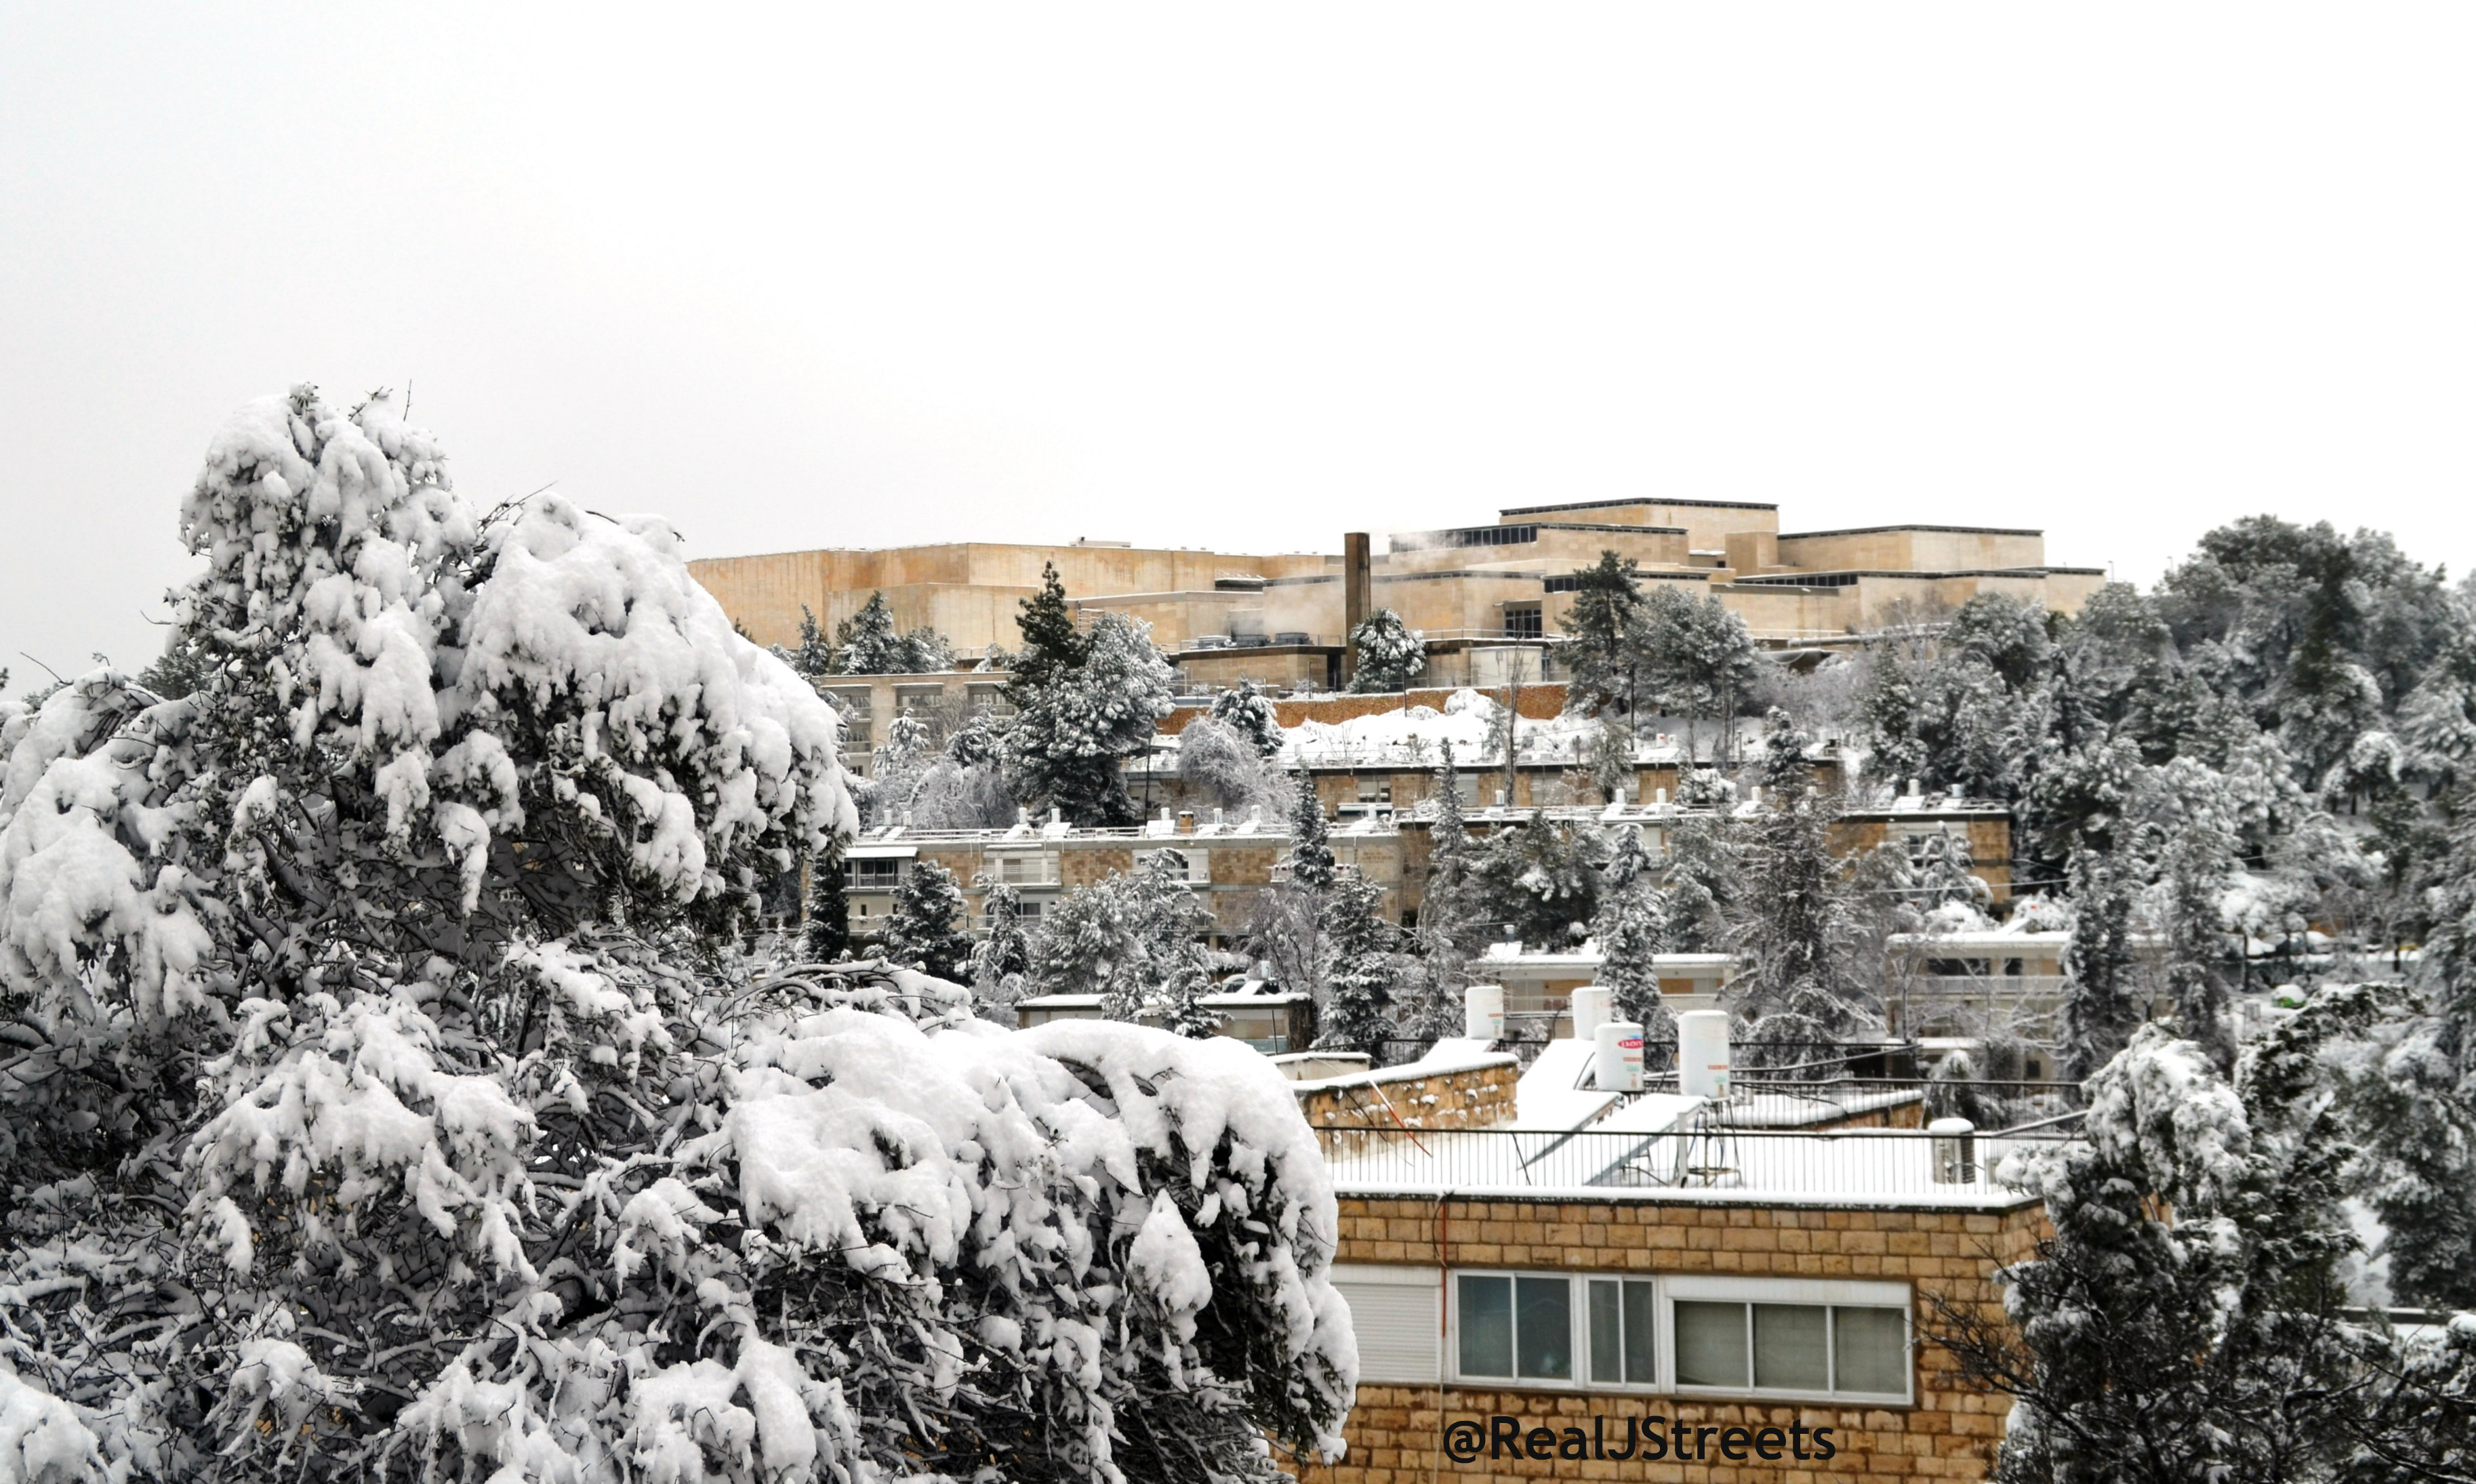 image israel museum in snow